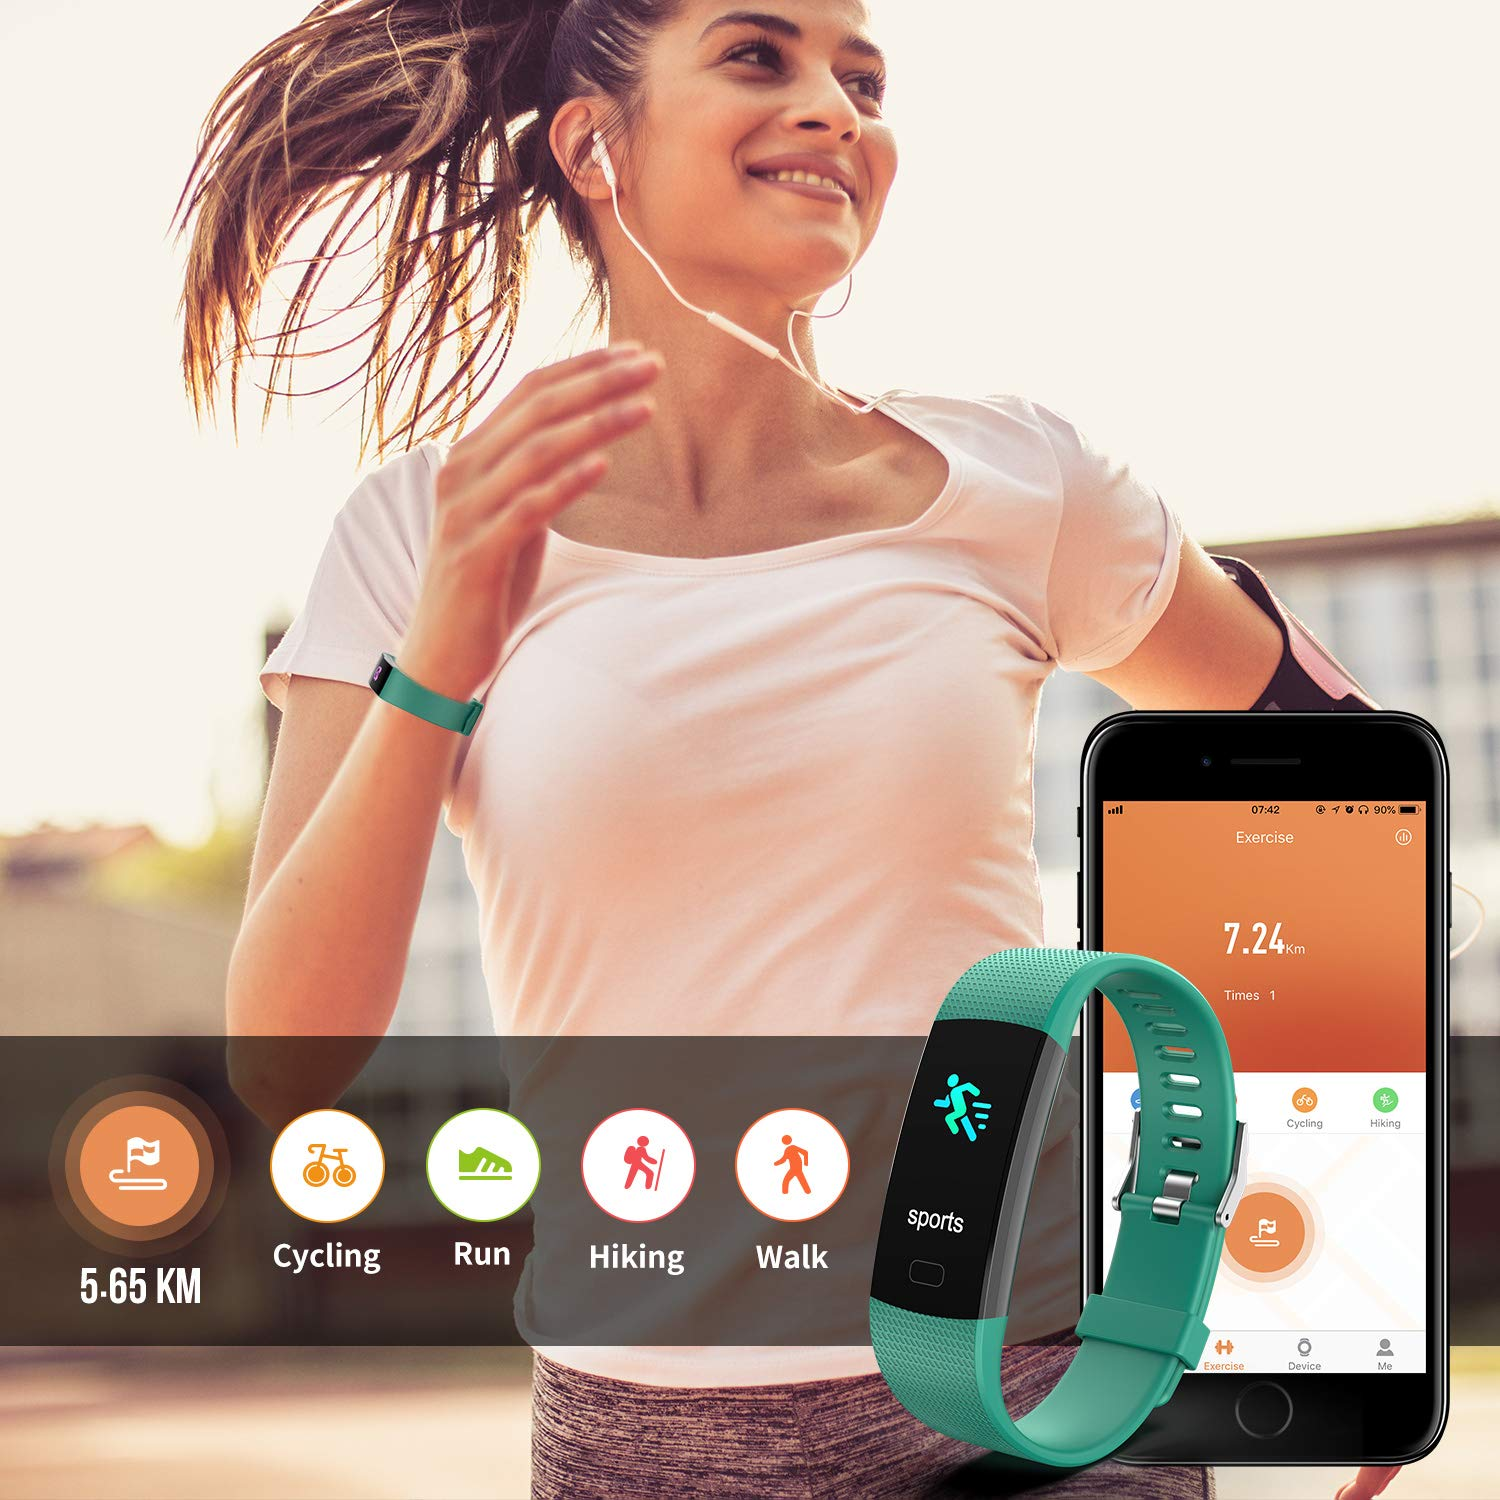 Fitness Tracker HR, Y1 Activity Tracker Watch with Heart Rate Monitor, Pedometer IP67 Waterproof Sleep Monitor Step Counter for Android & iPhone (Green) by Akuti (Image #3)